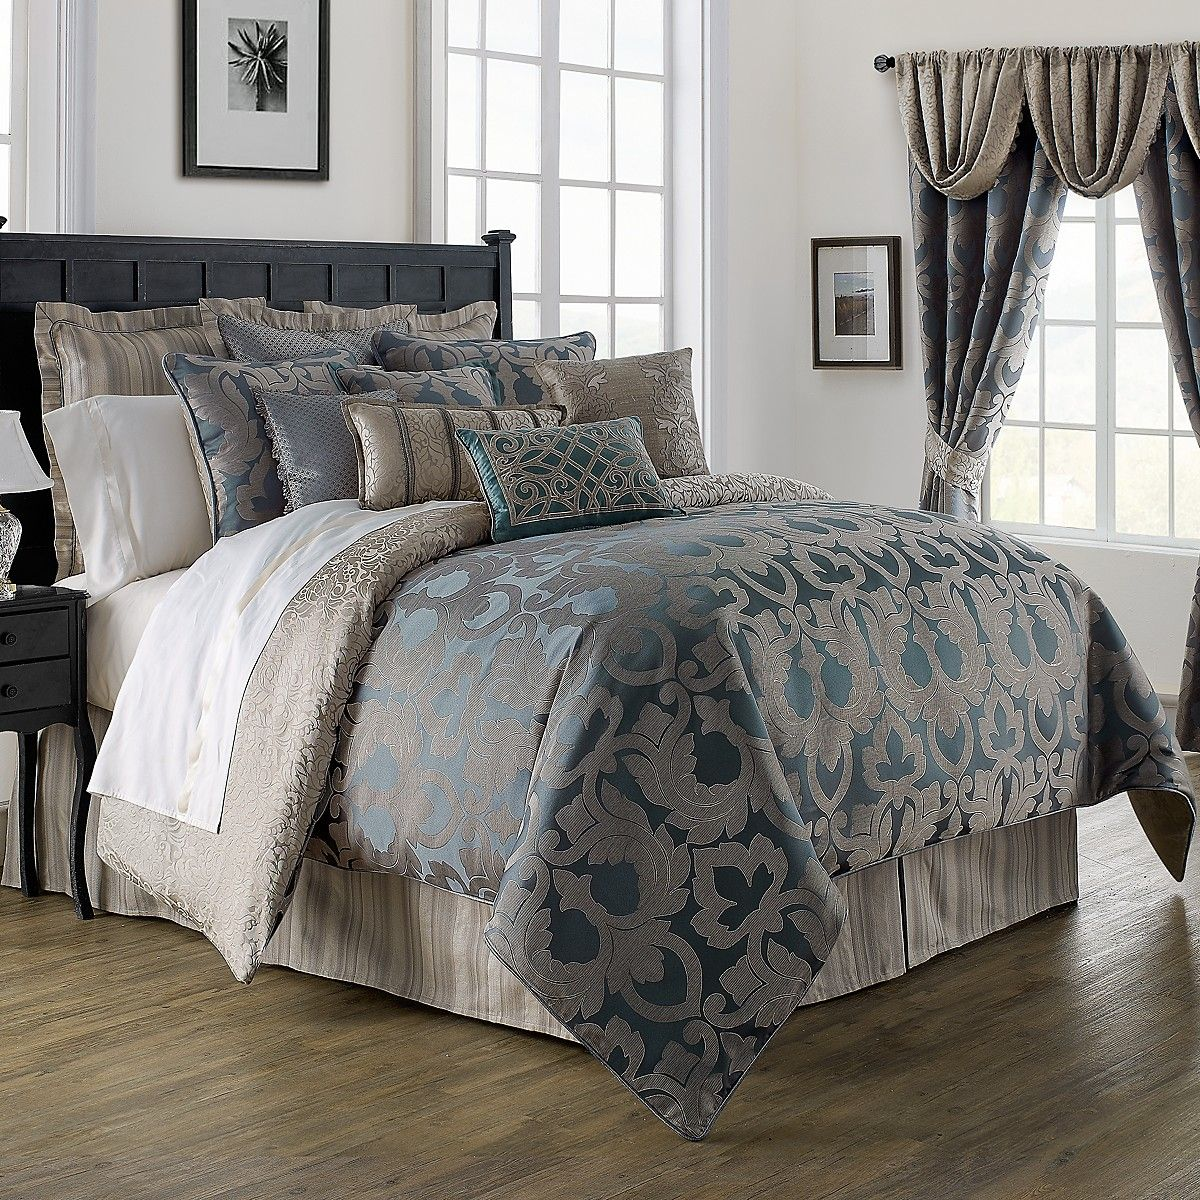 karan donna home sferra hotel bedding atmosphere comforter designs bloomingdale collections comforters future collection s bloomingdales grande